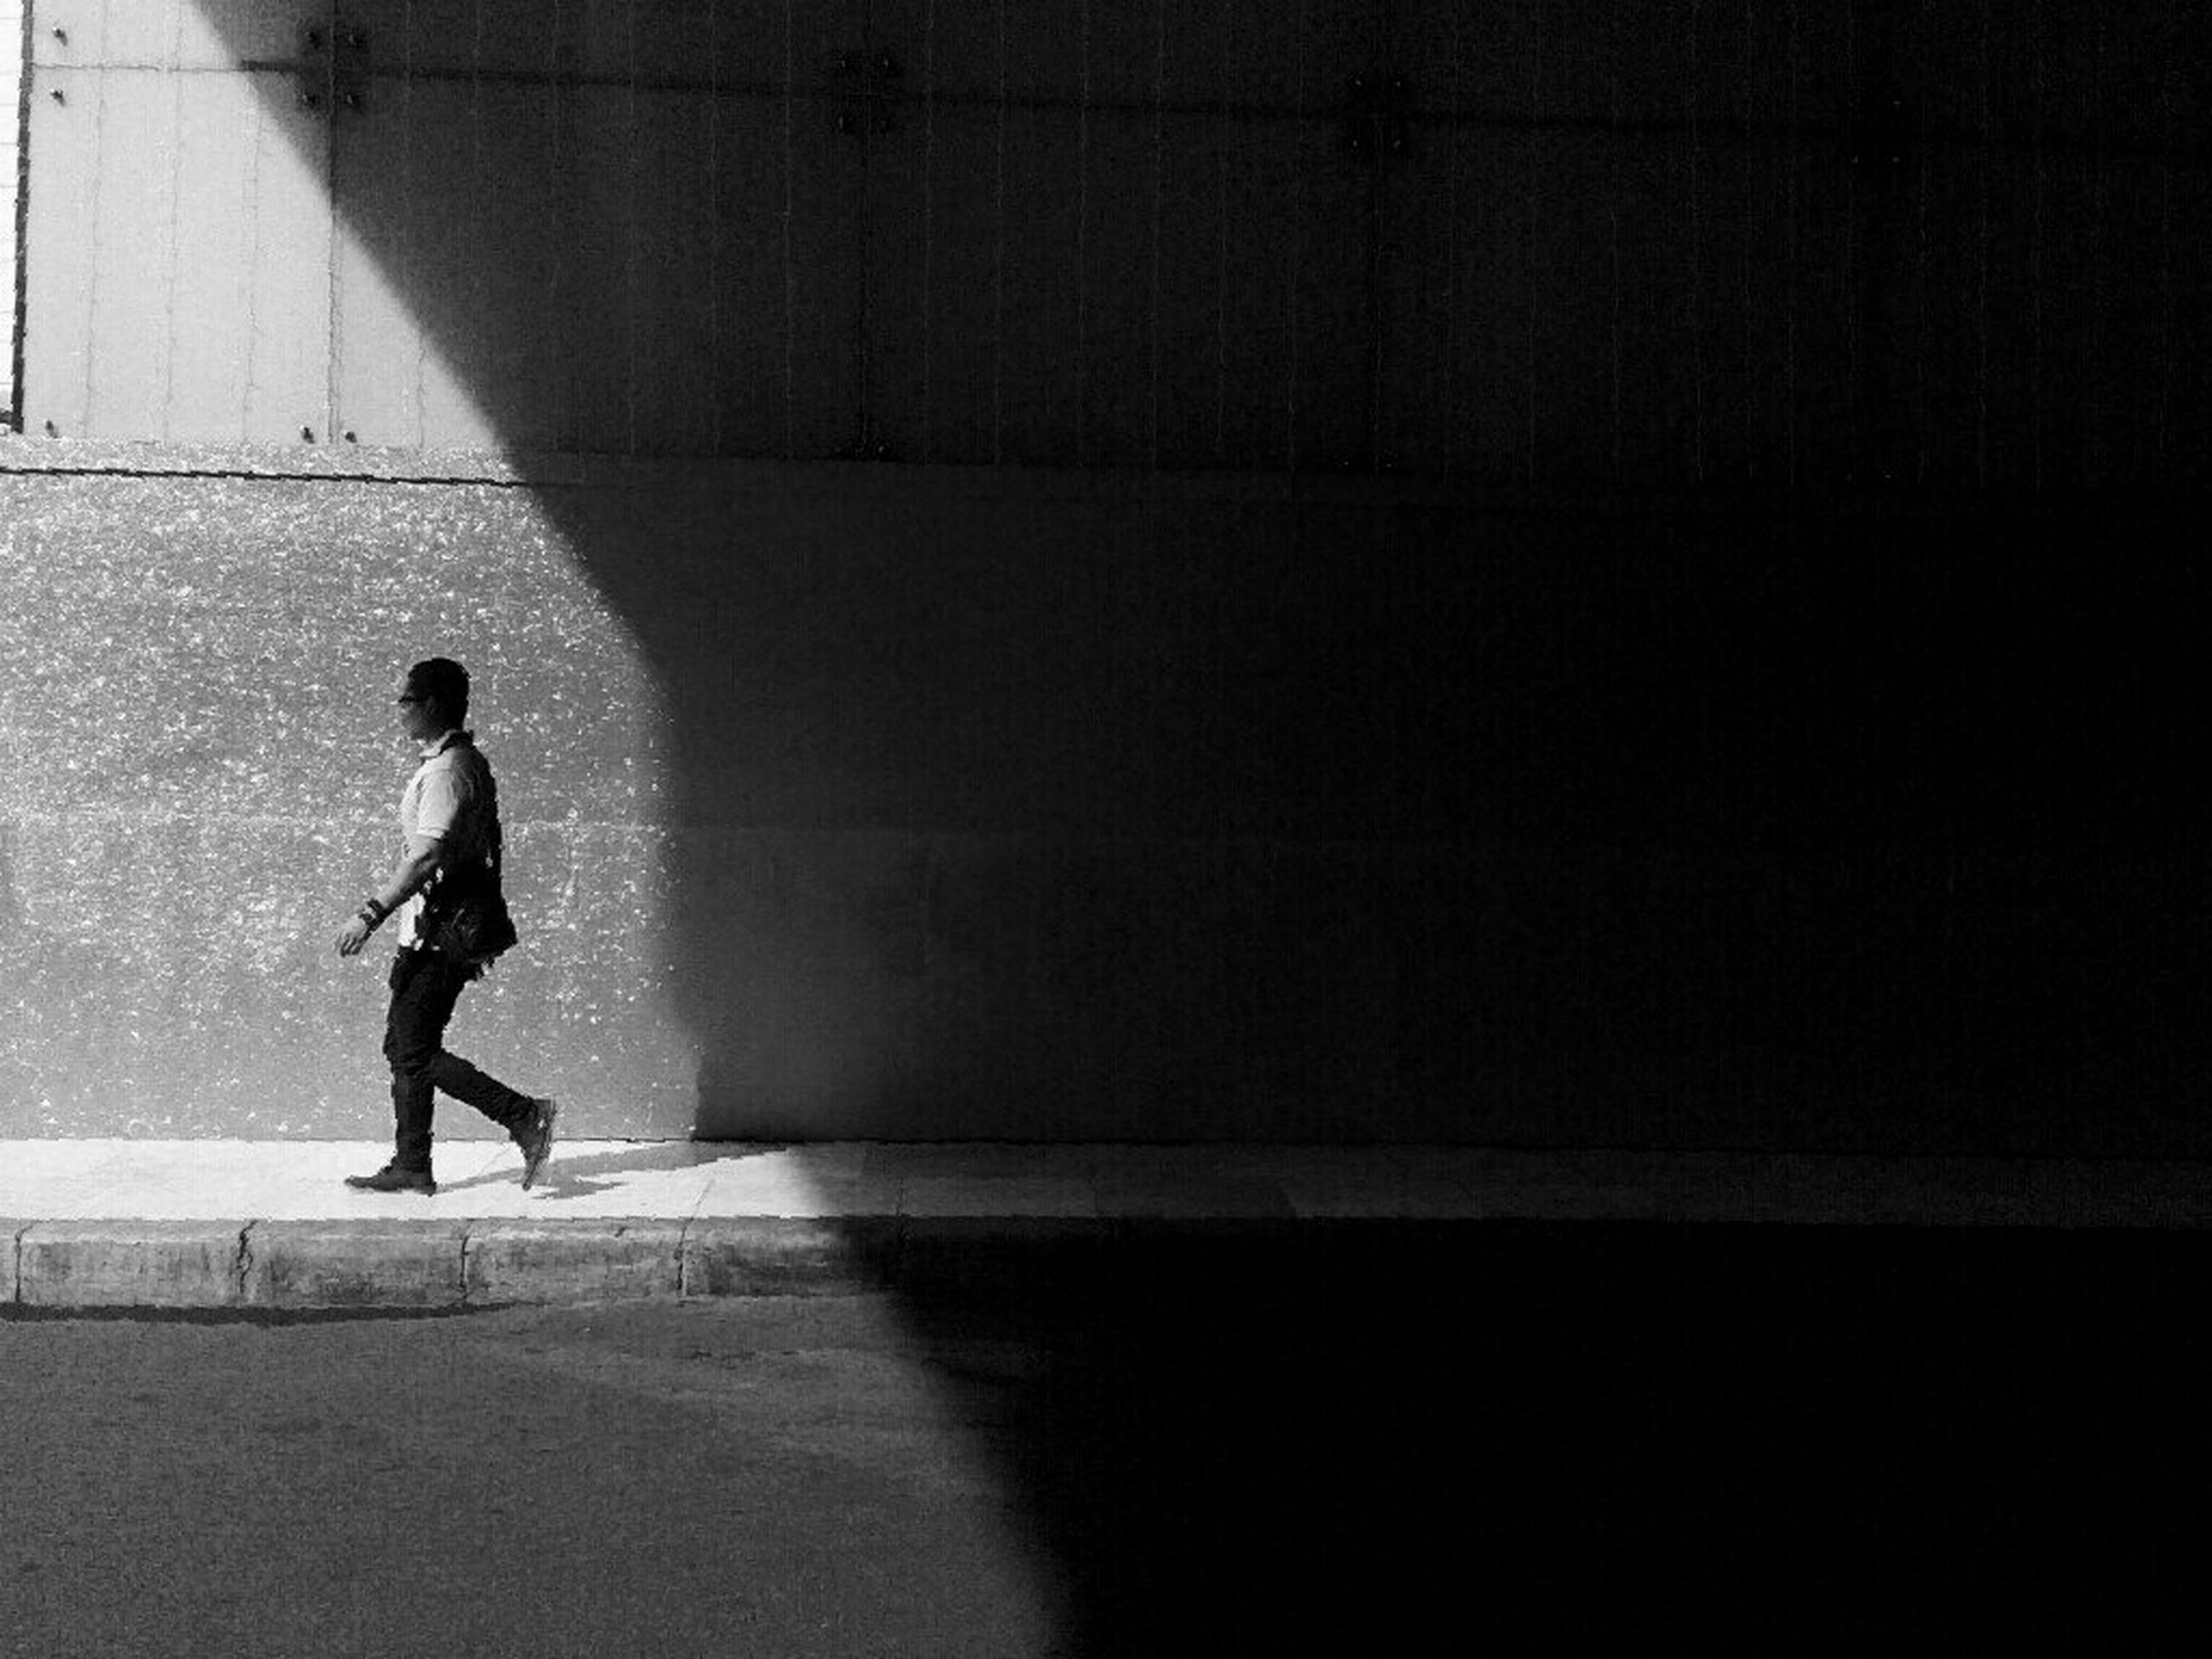 full length, lifestyles, leisure activity, walking, standing, wall - building feature, side view, casual clothing, architecture, built structure, men, shadow, rear view, wall, person, sunlight, young adult, silhouette